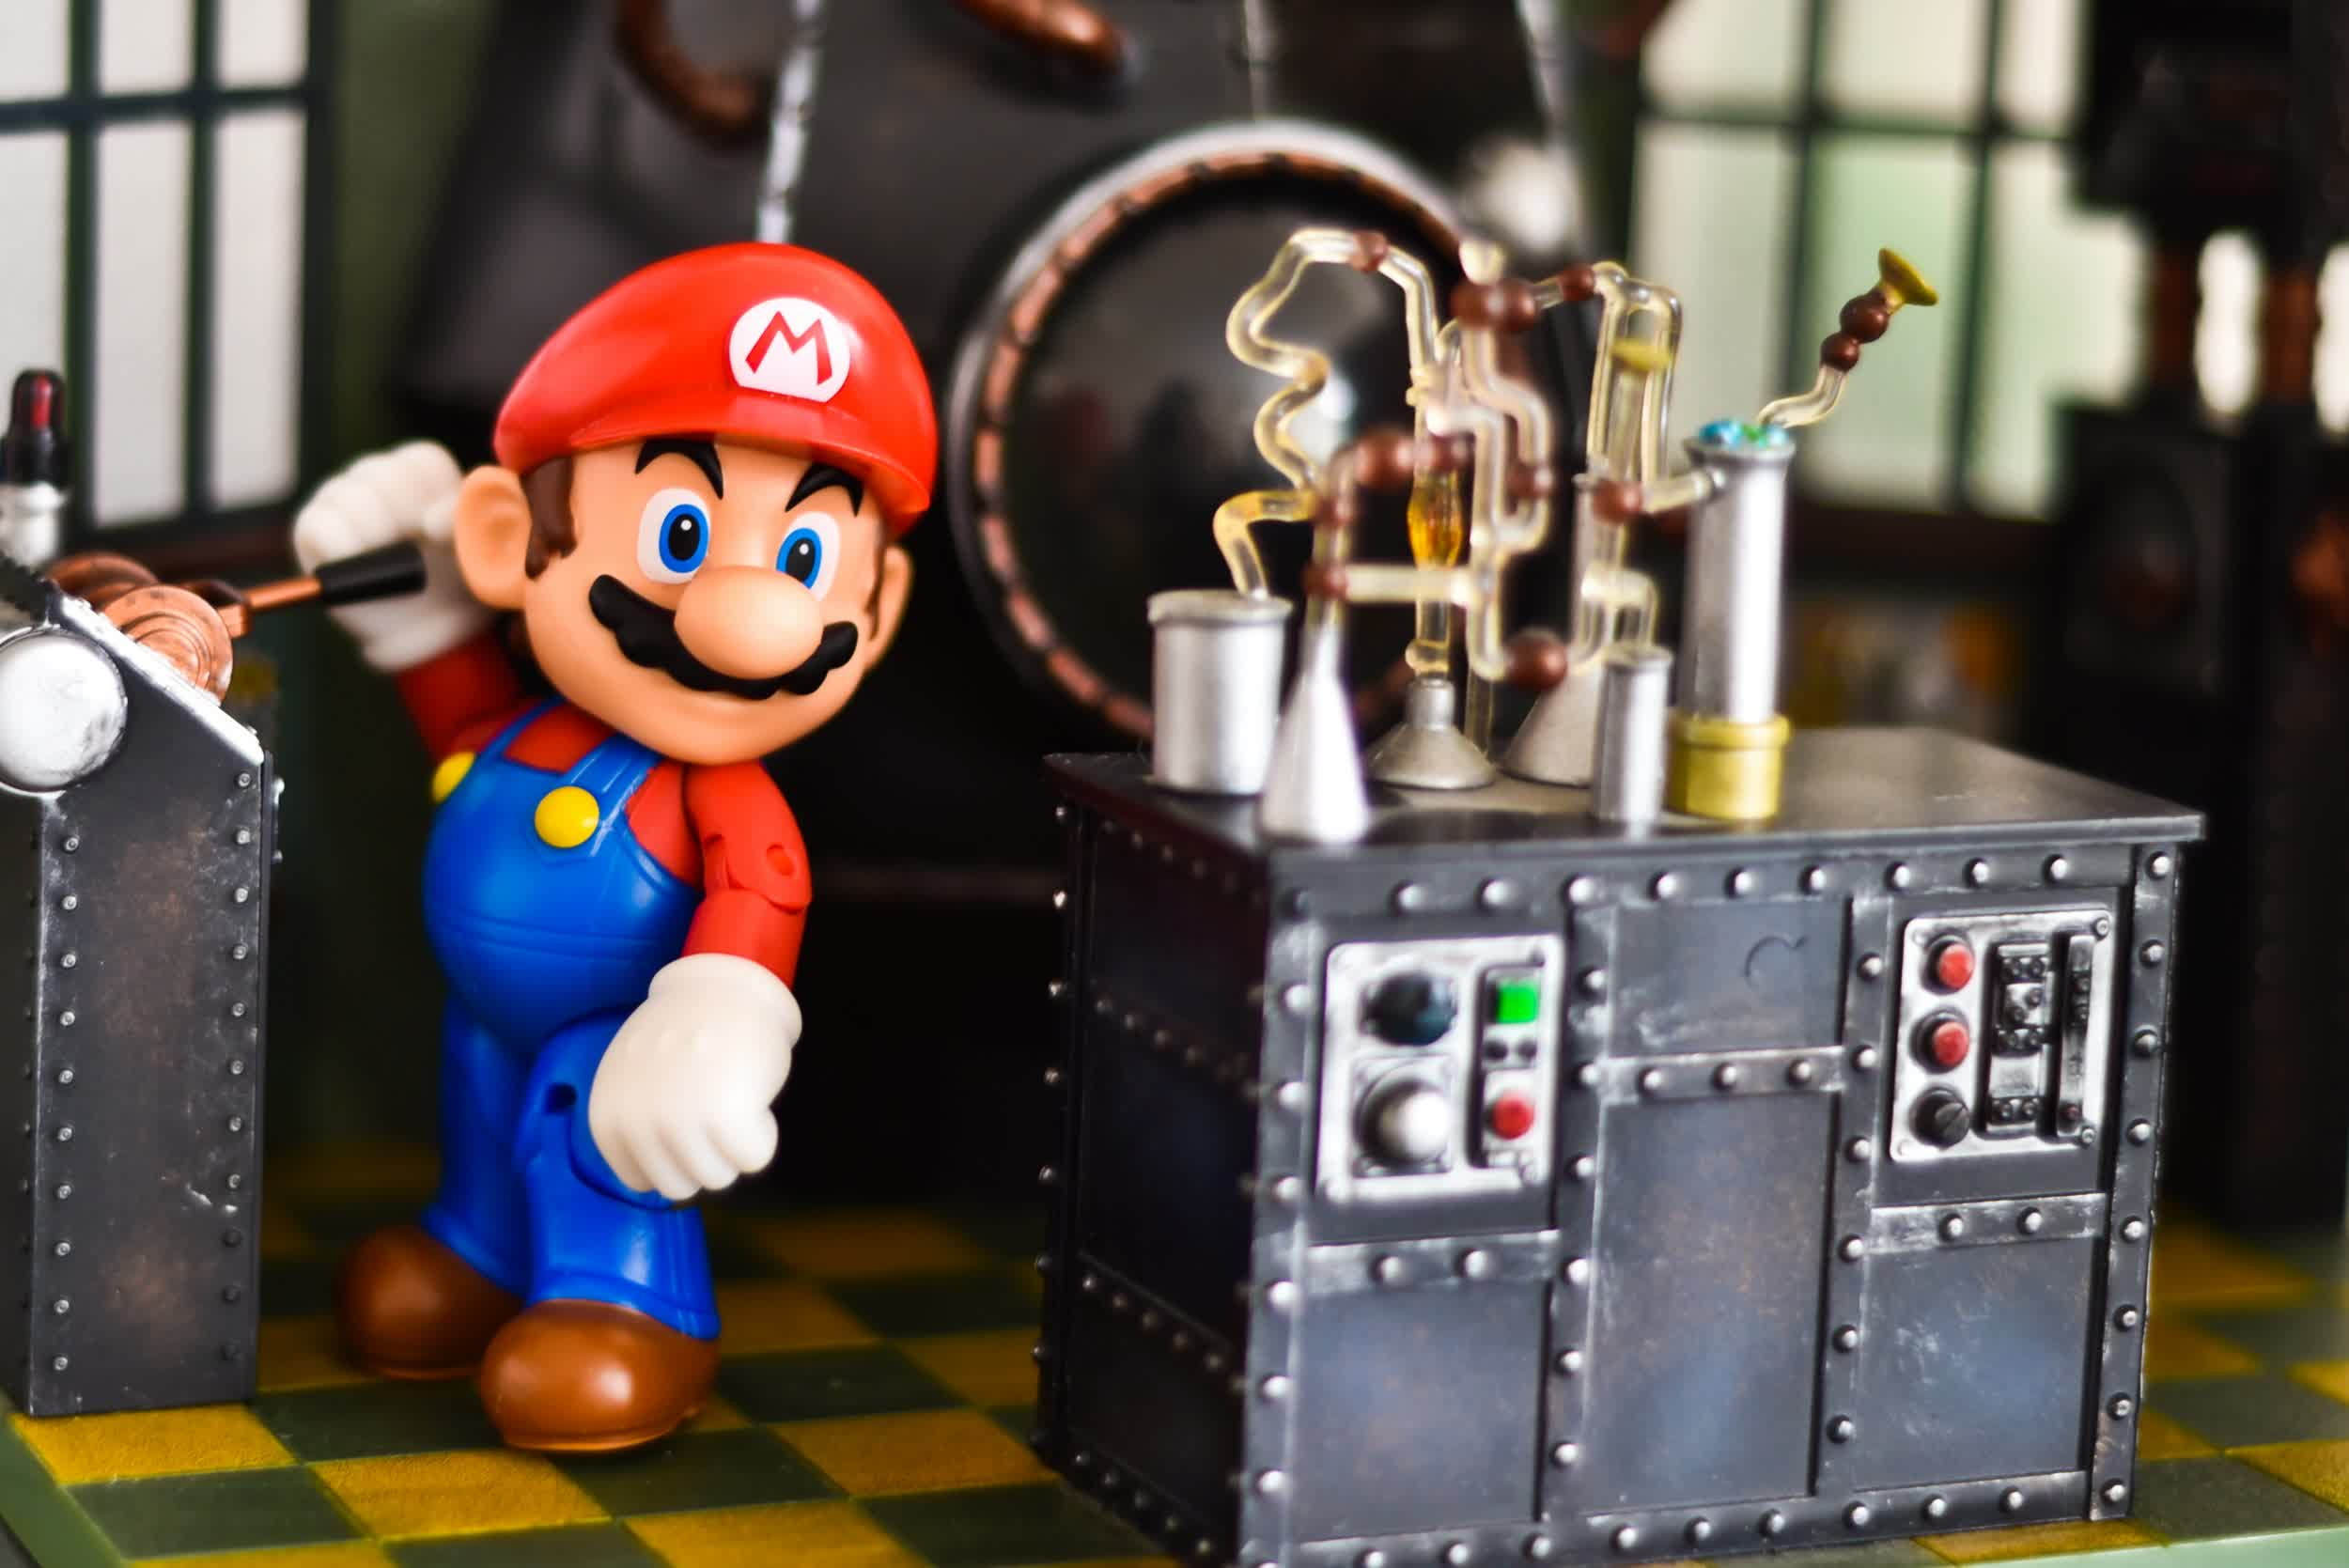 Nintendo reaffirms plans to halt production of Super Mario Bros. 35th anniversary products later this month